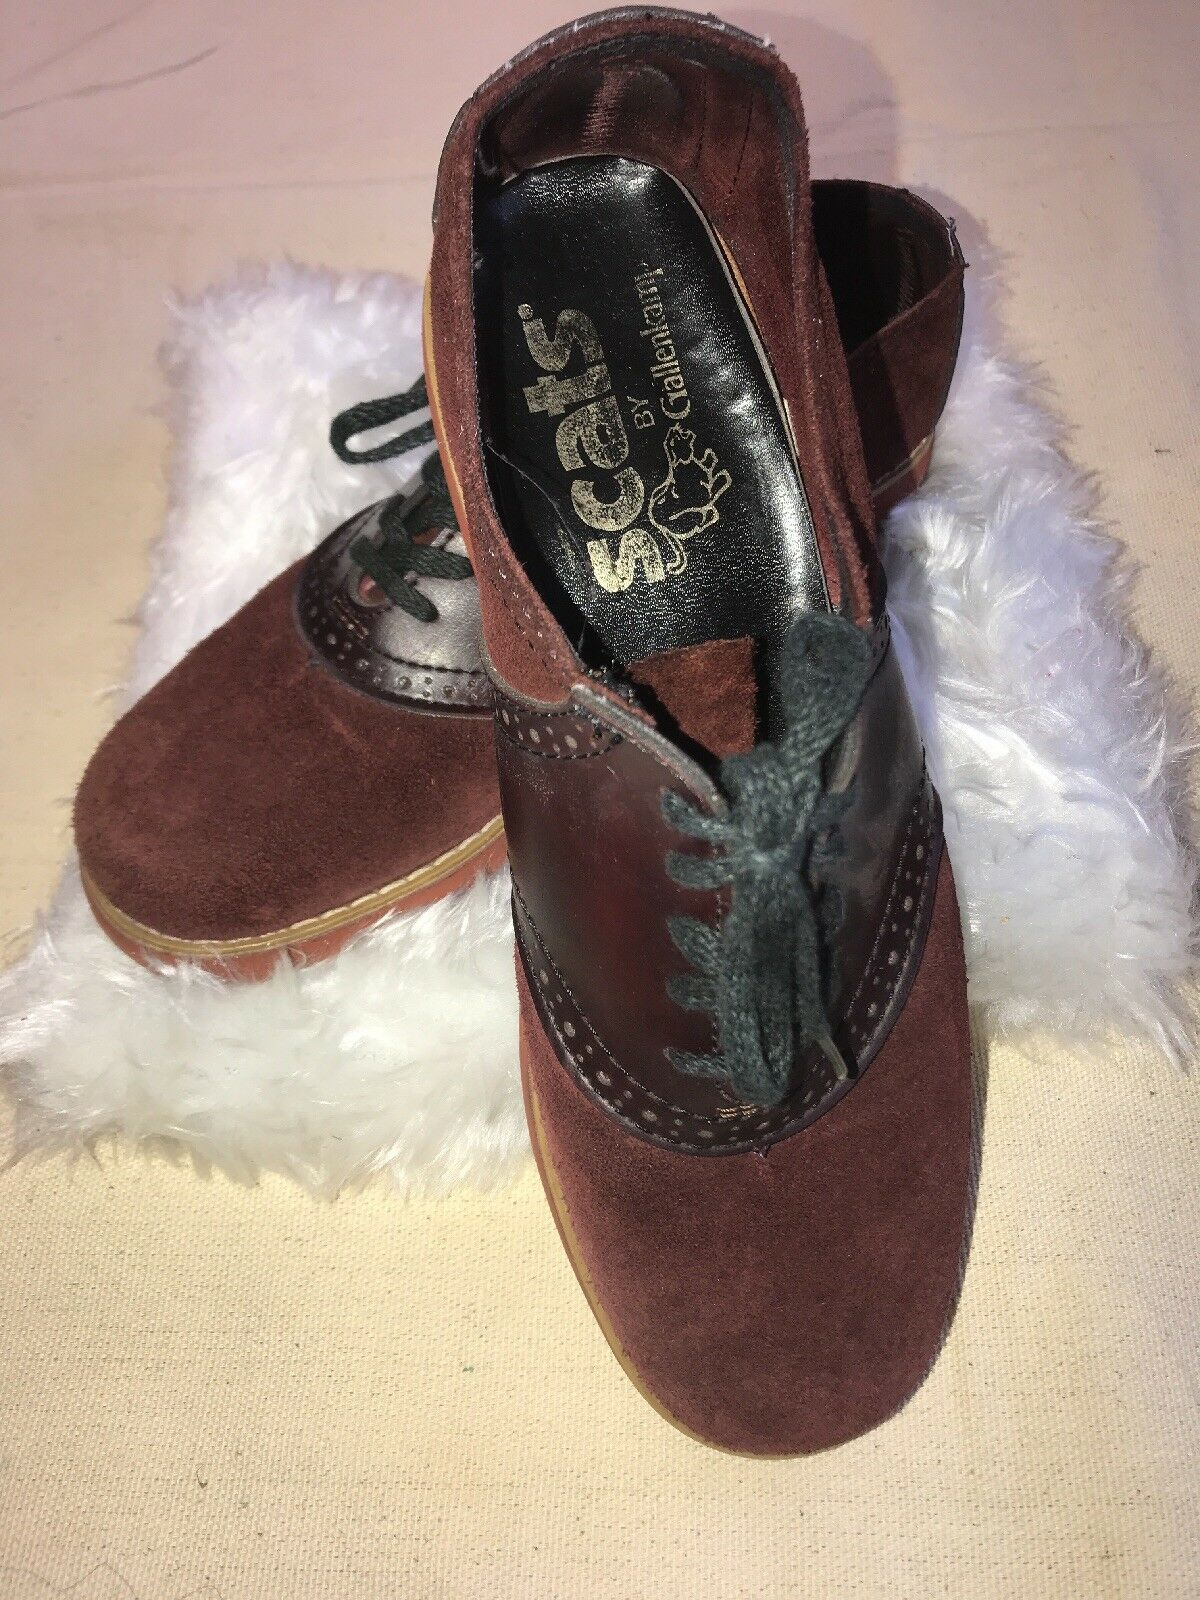 GALLENKAMP Vintage SuedeLeather Oxford Shoes Burgandy Size 7